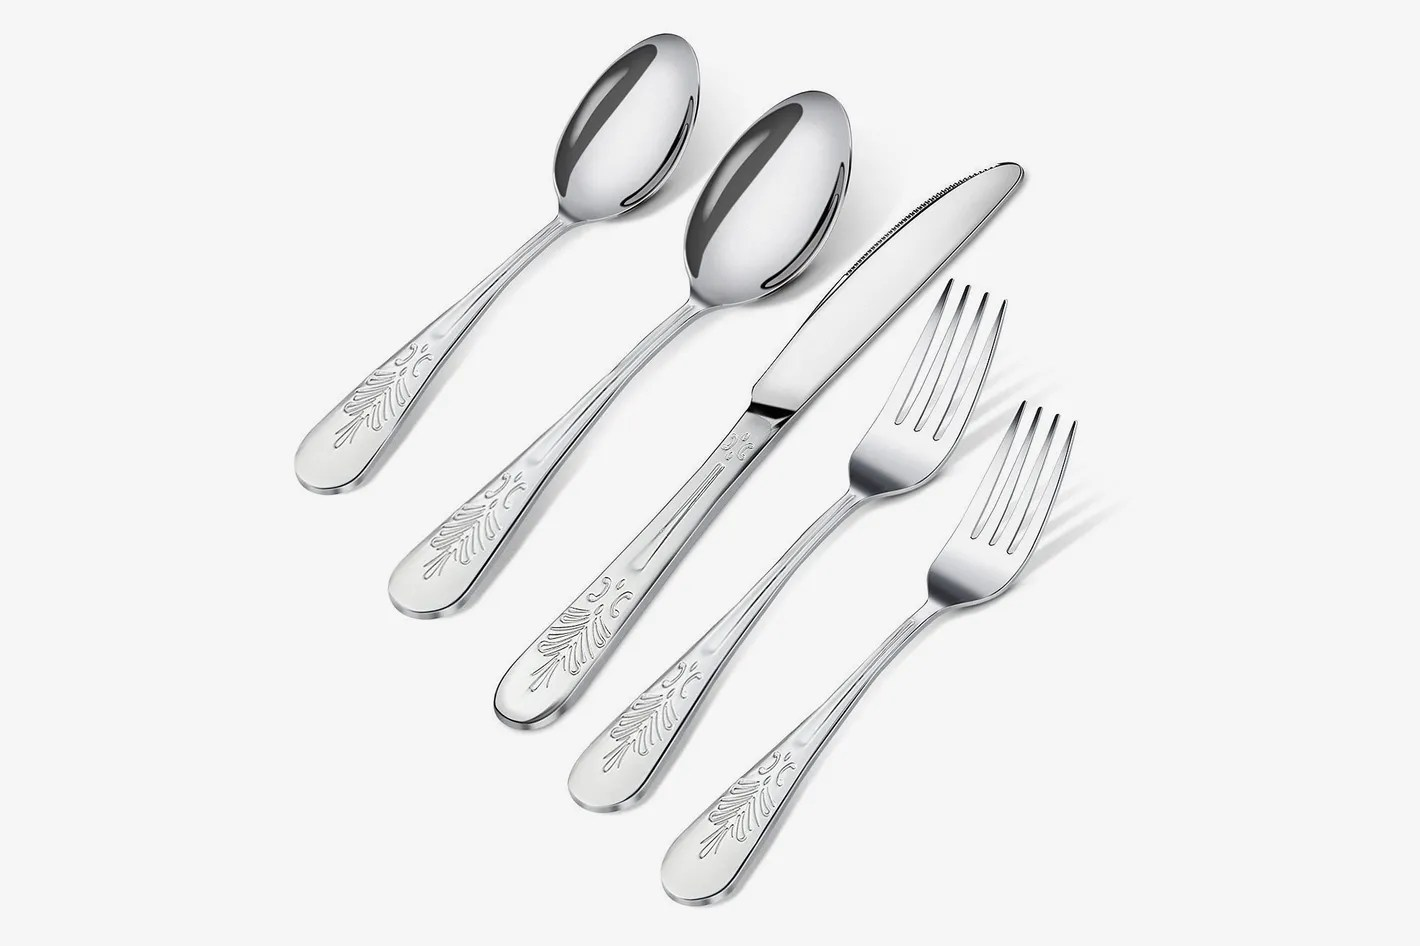 Discount Stainless Flatware 15 Best Flatware And Silverware Sets 2019